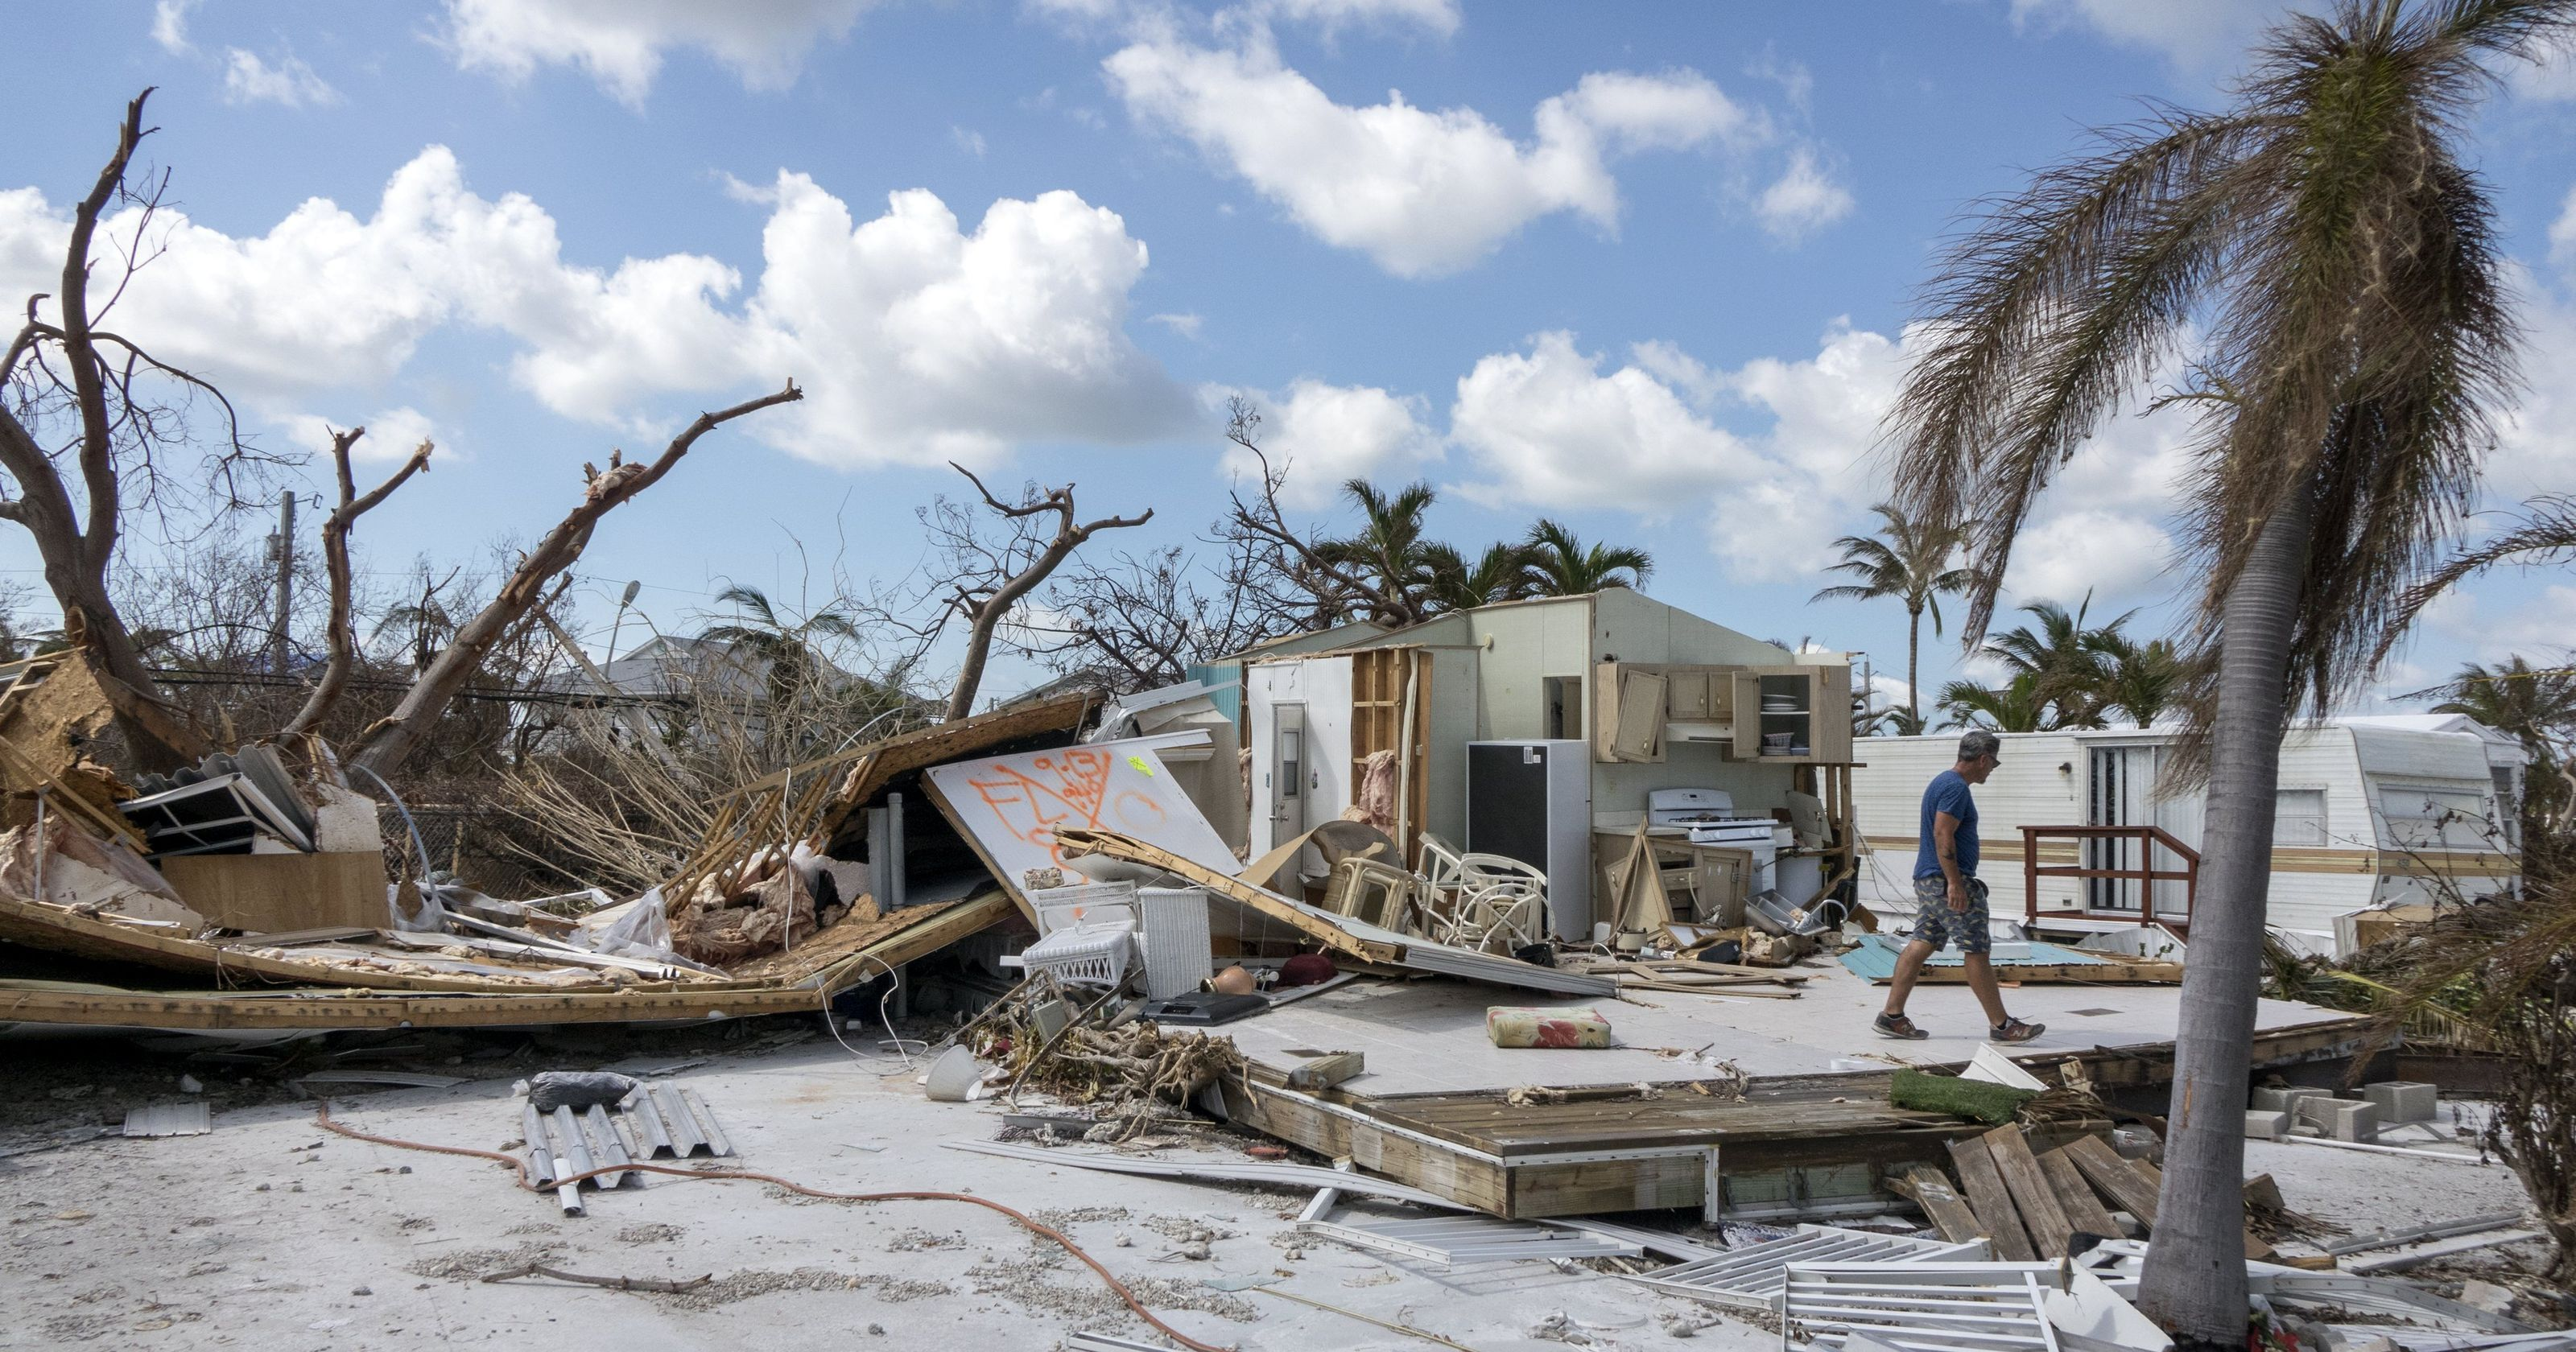 Disastri naturali: 326 morti e 306 miliardi di danni negli Usa